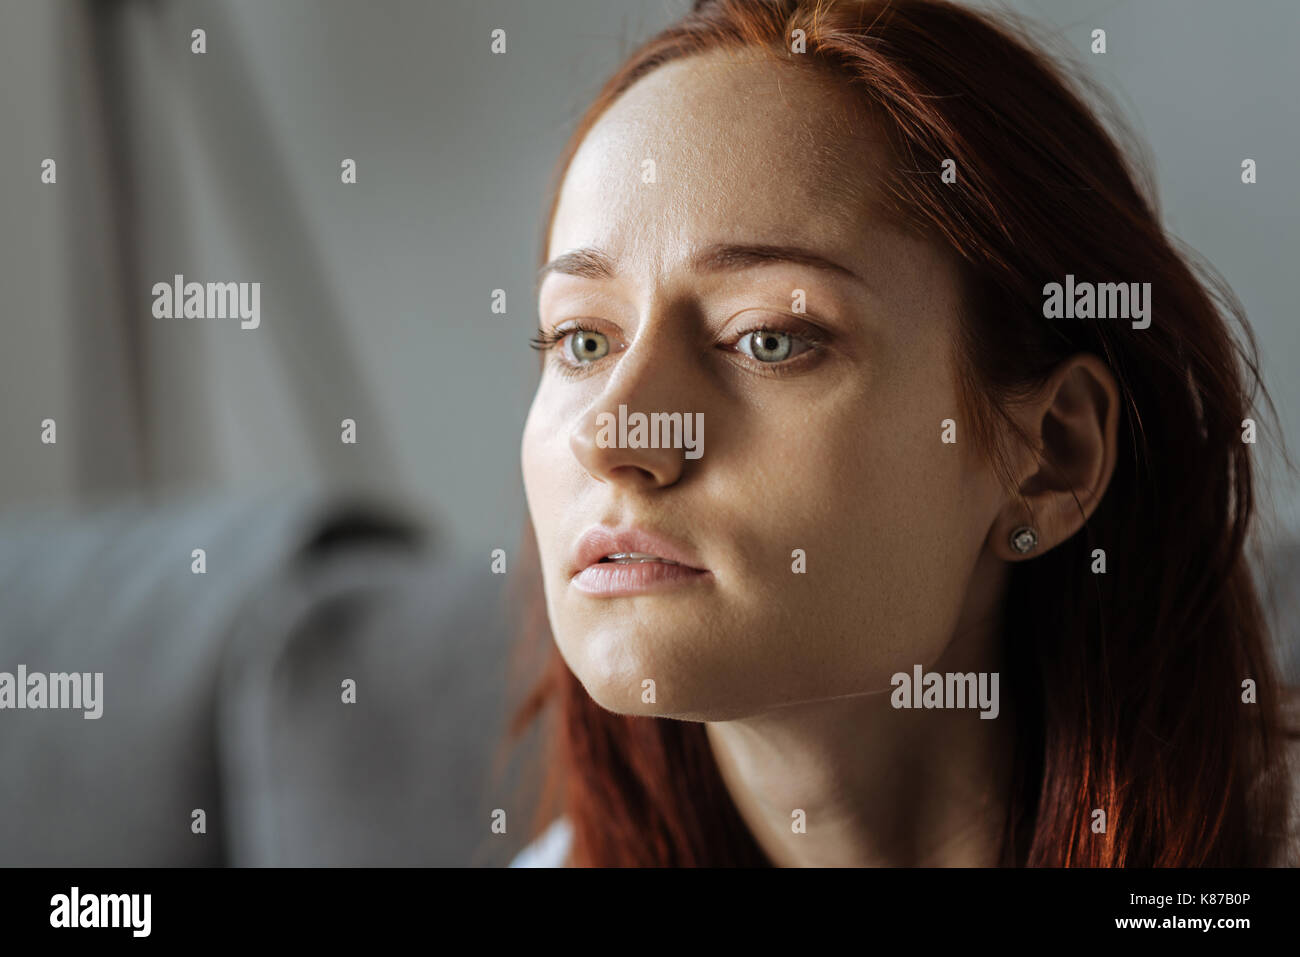 Sad moody woman suffering from depression - Stock Image